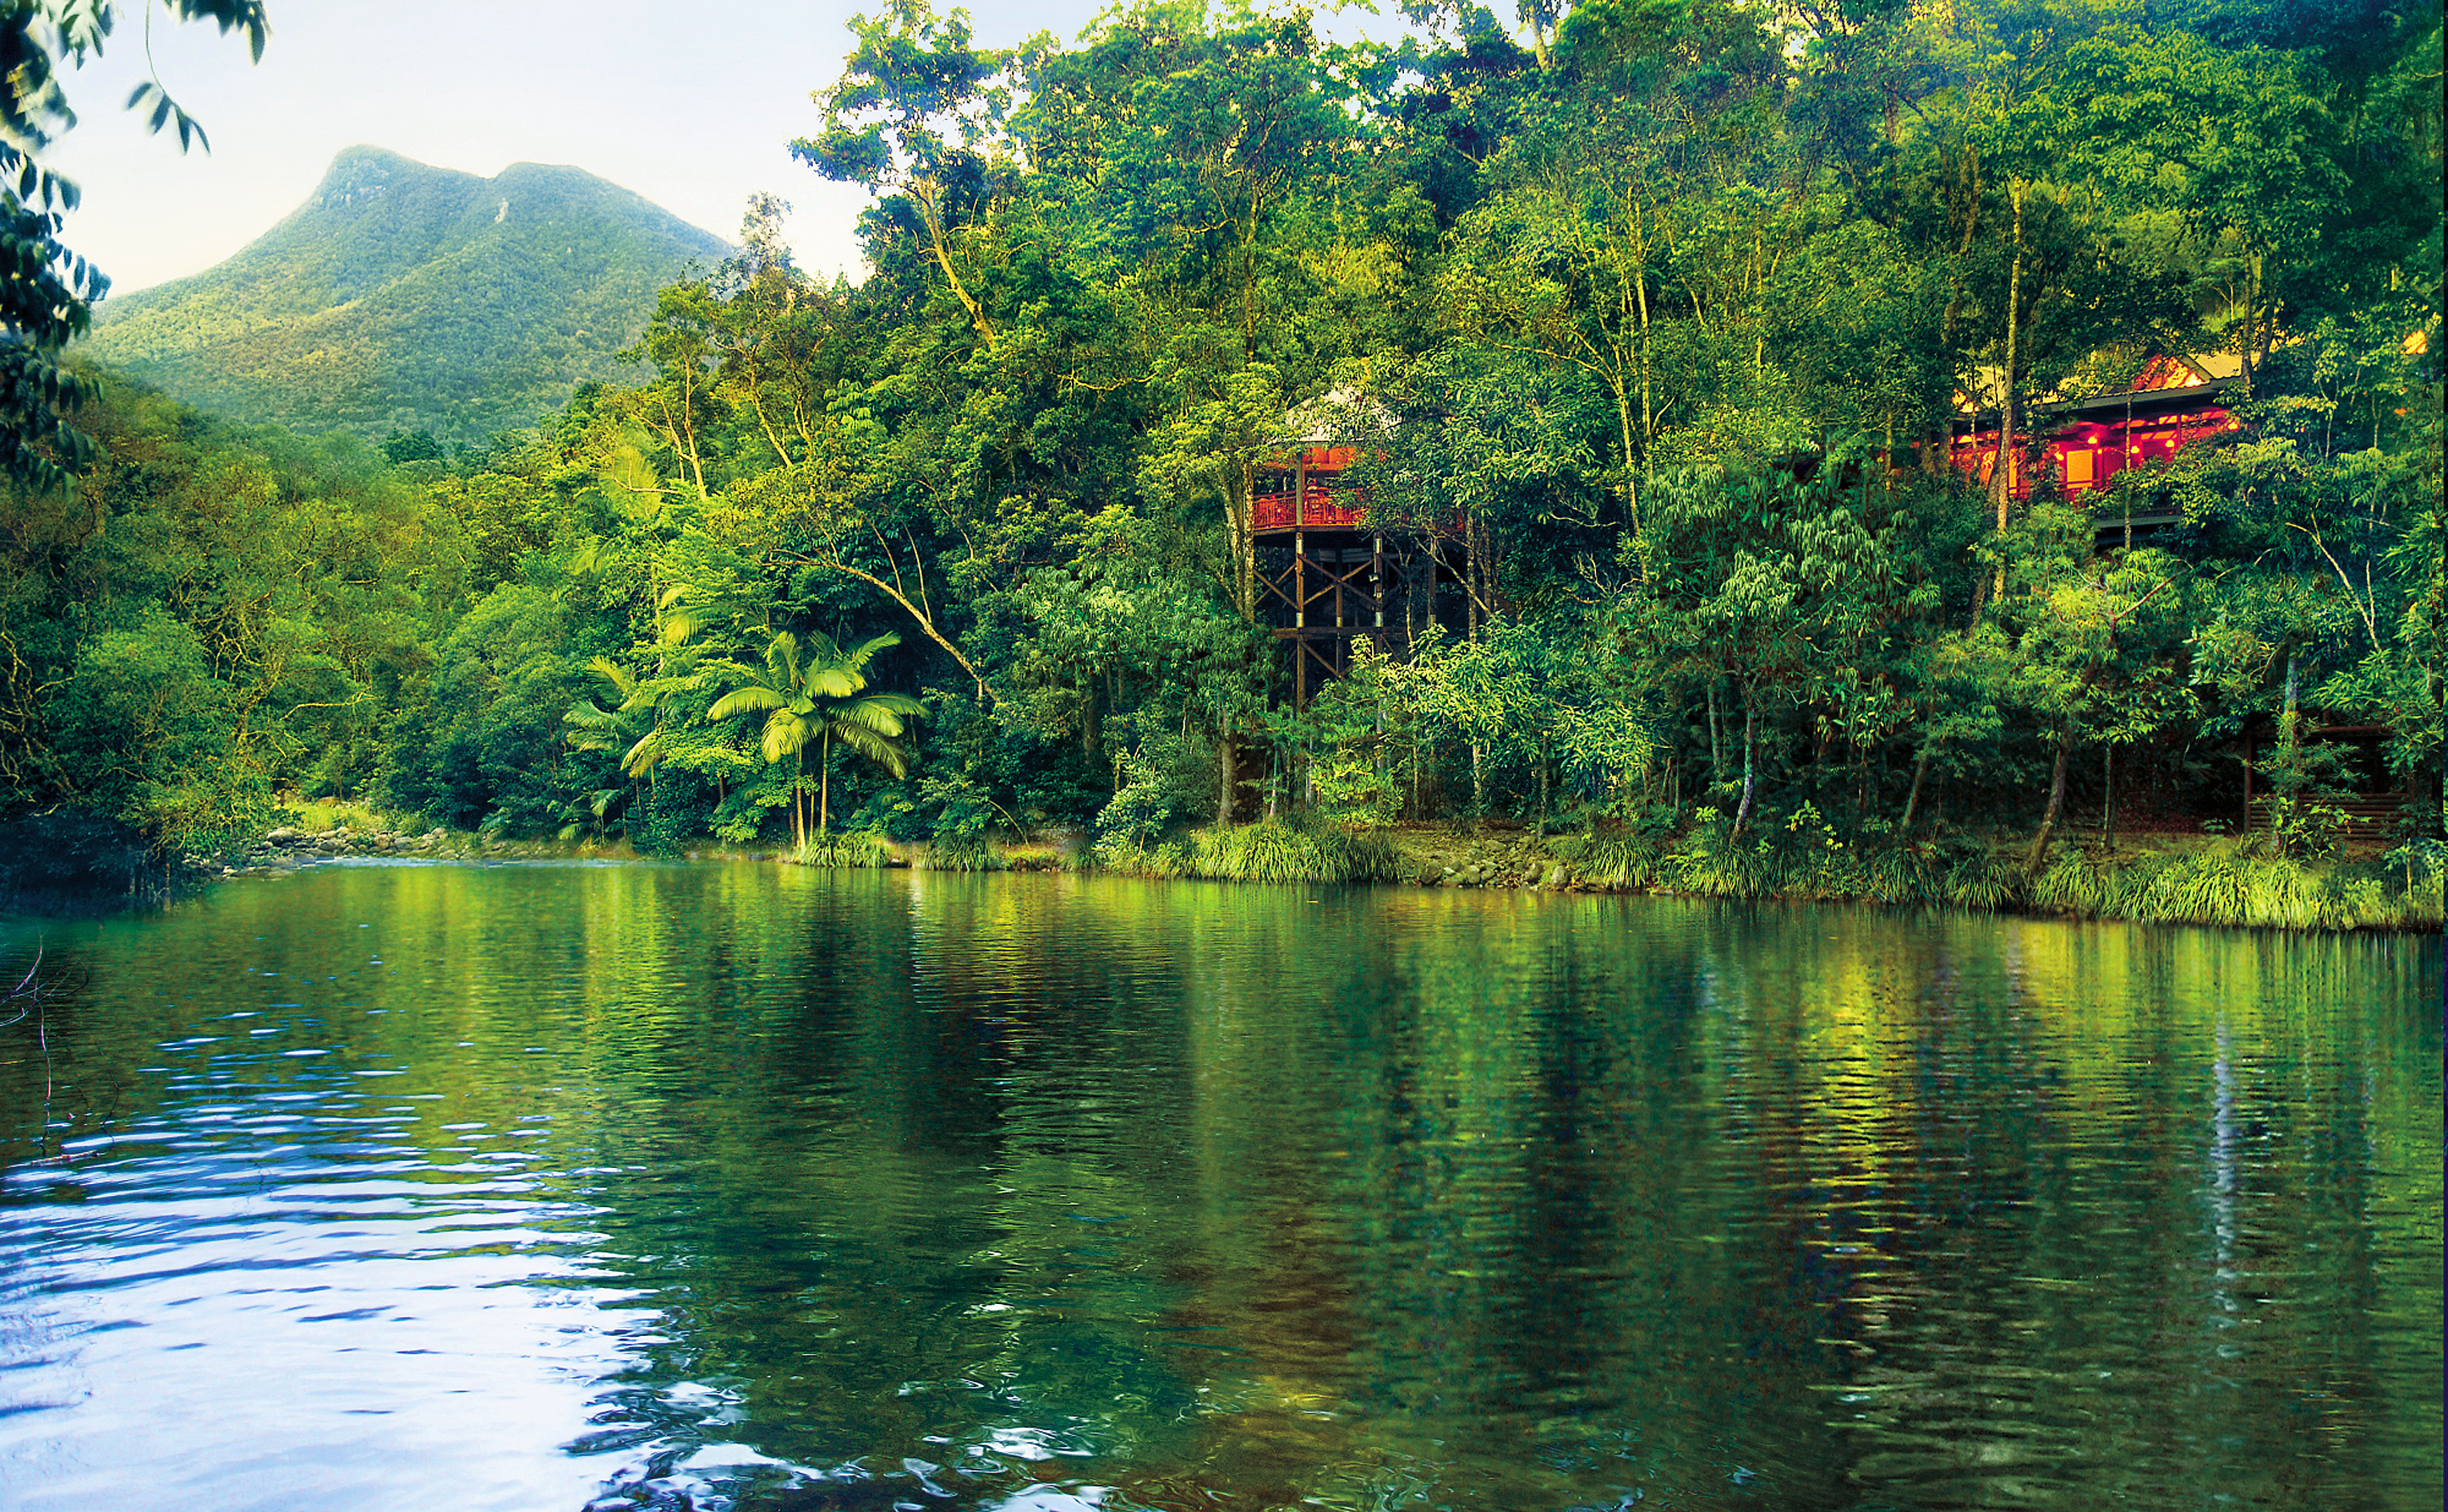 Silky Oaks Lodge - The Daintree - River Image Hero - Click to view larger version